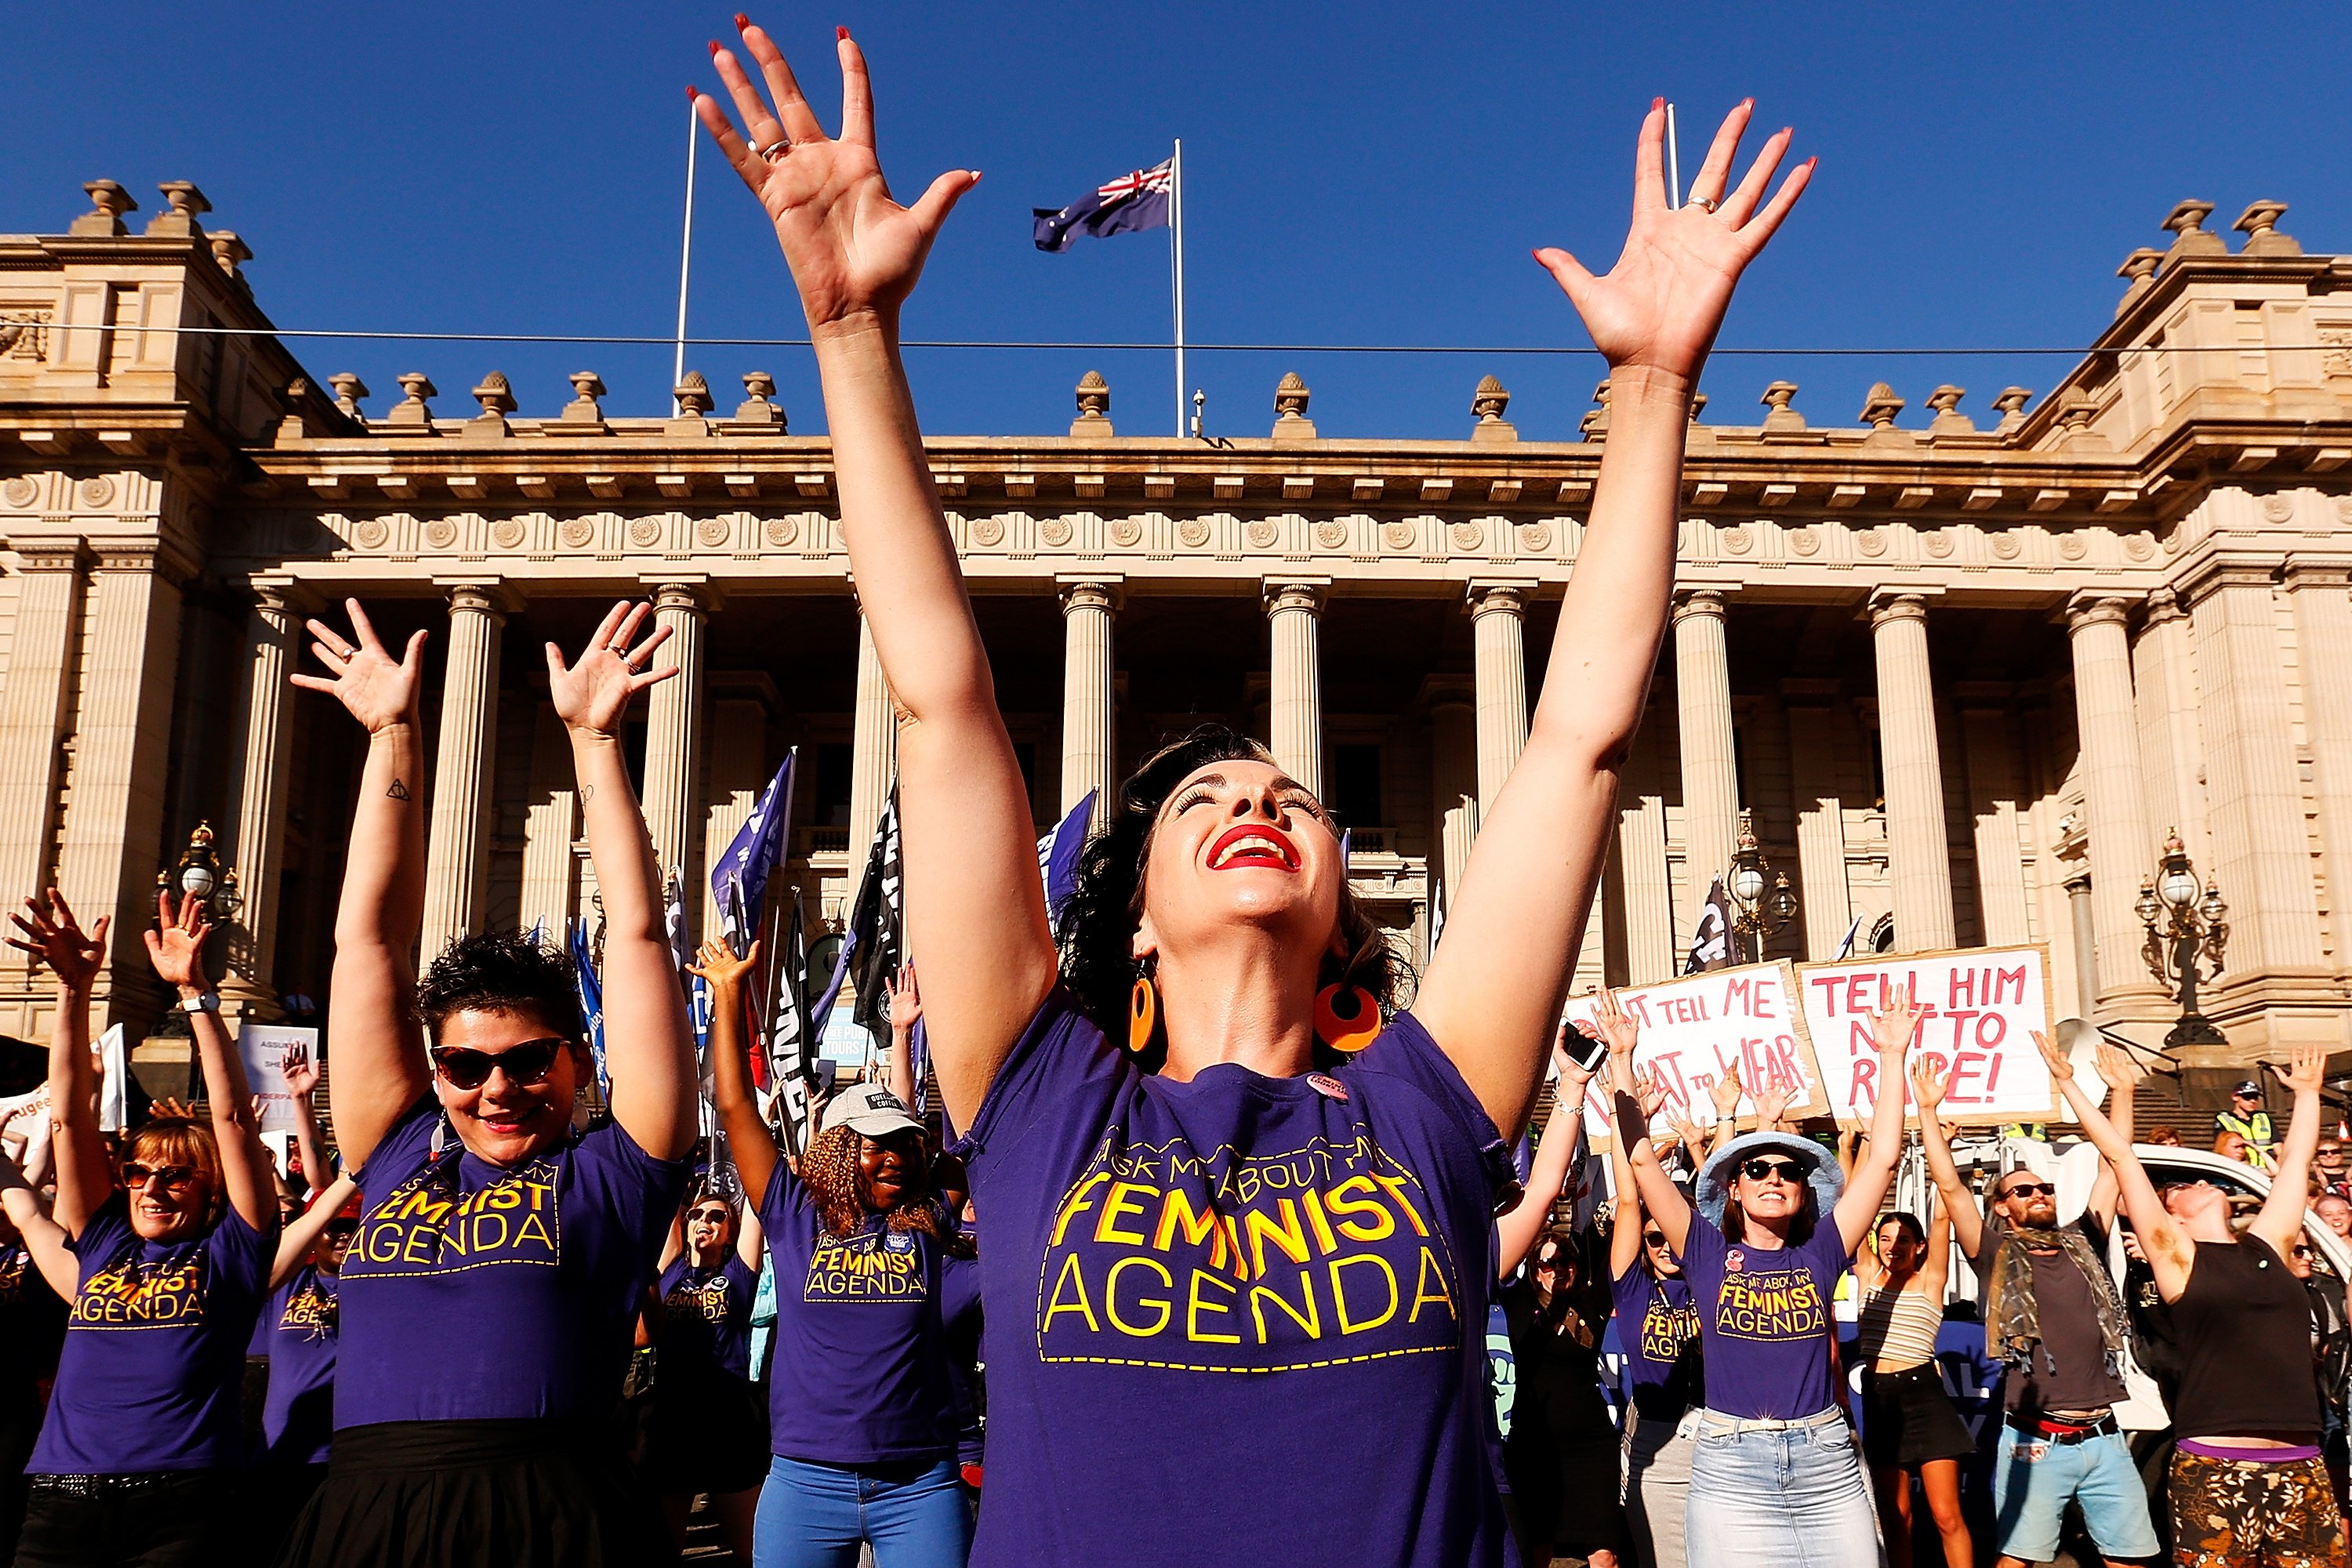 MELBOURNE, AUSTRALIA - MARCH 08:  Thousands of demonstrators attend a Rally for International Women's Day on March 8, 2017 in Melbourne, Australia.  Marchers were calling for de-conolisation of Australia, an end to racism, economic justice for all women and reproductive justice, as well as supporting the struggle for the liberation of all women around the world, inclusive of trans women and sex workers.  (Photo by Daniel Pockett/Getty Images)